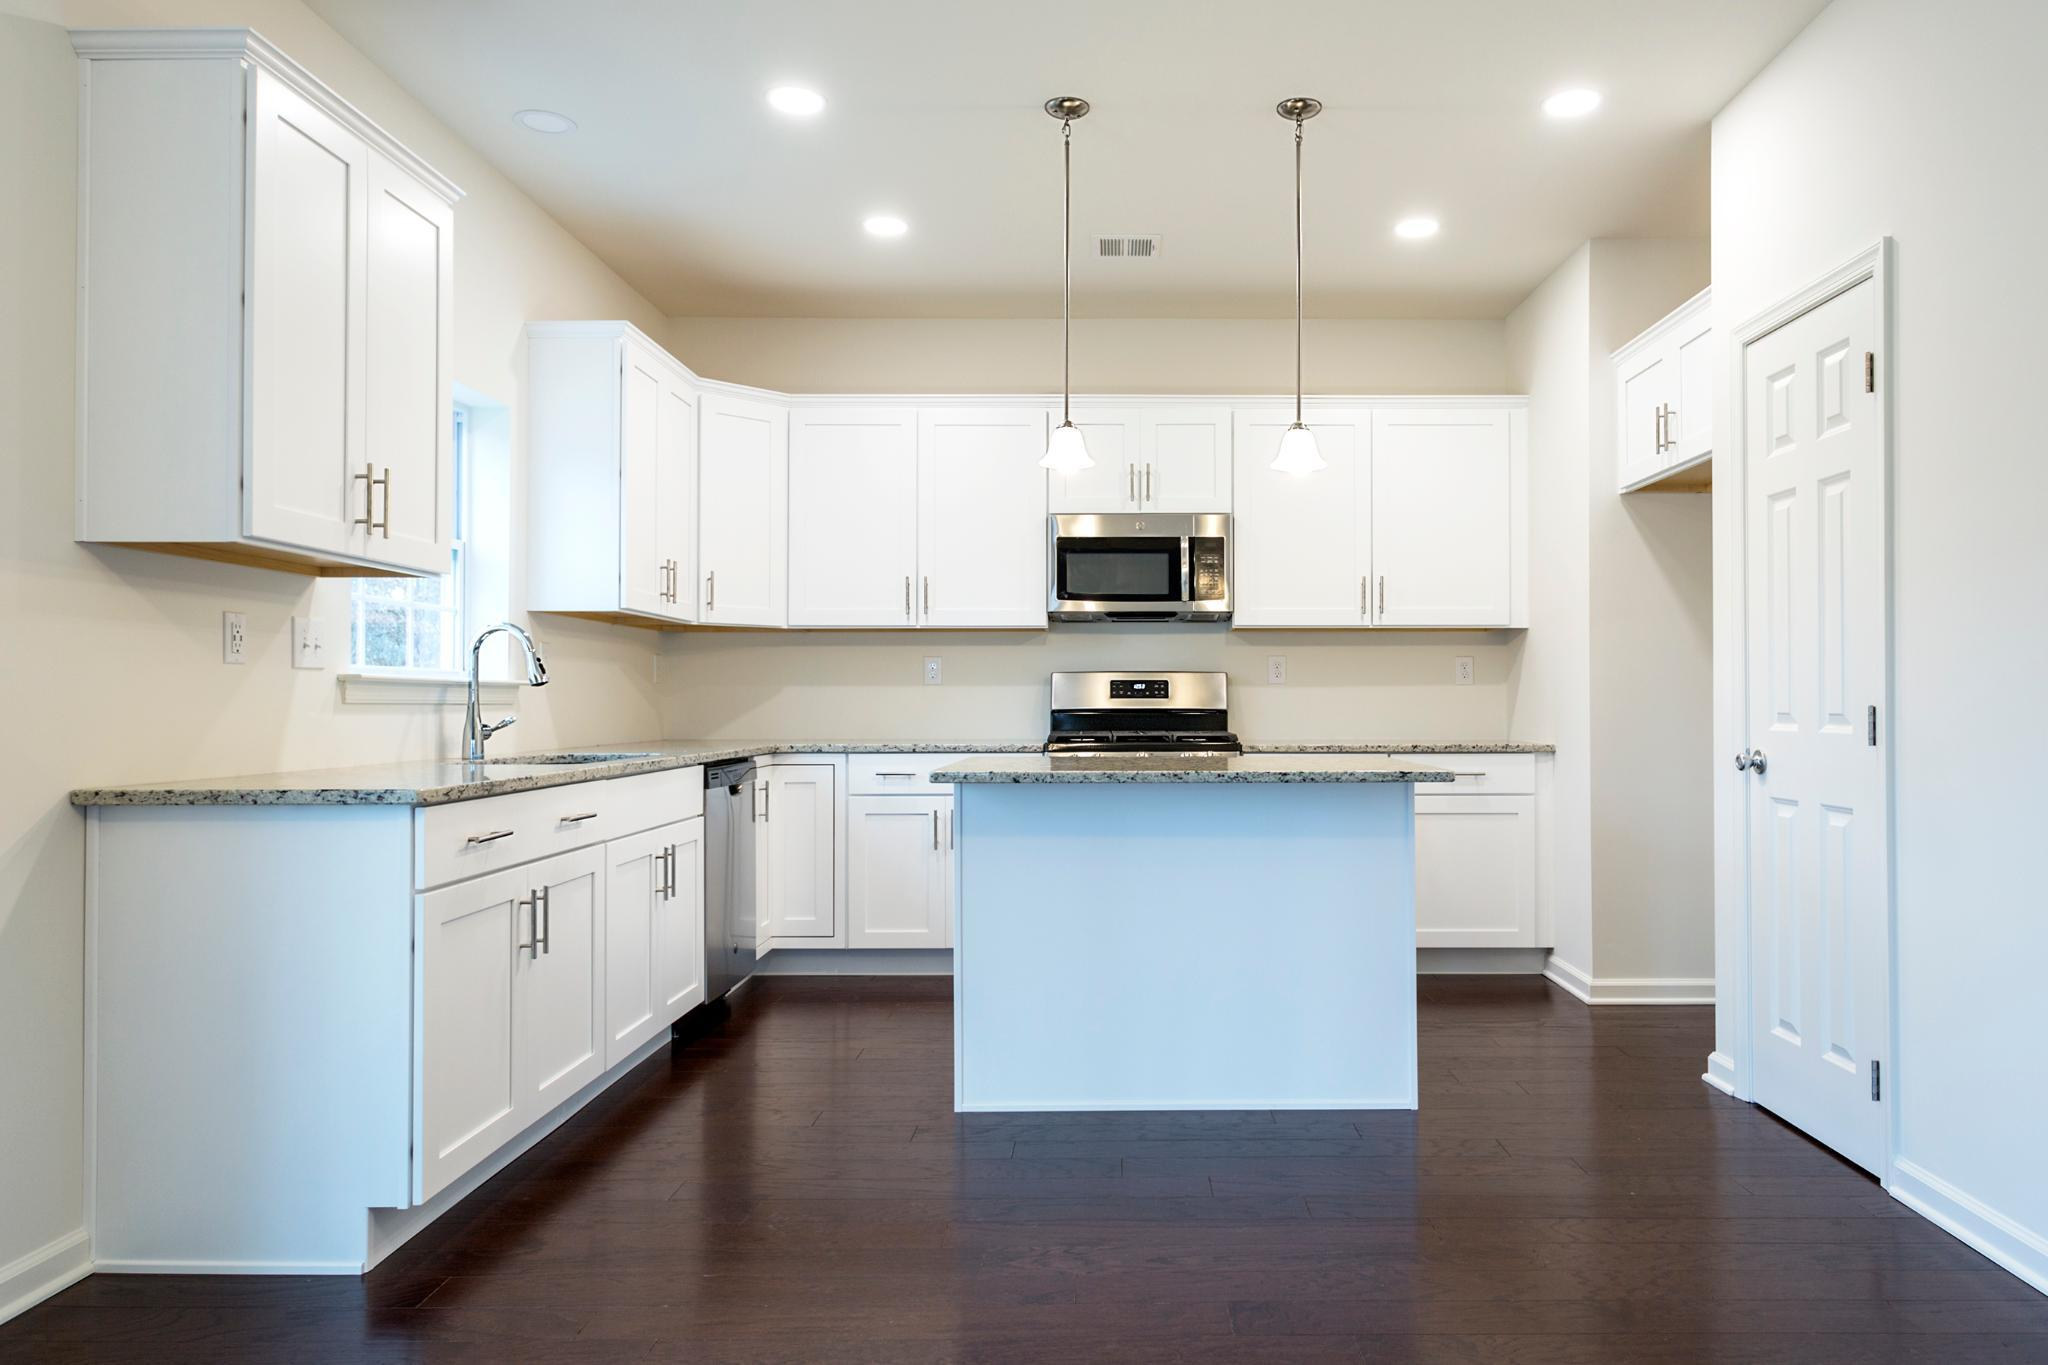 Kitchen featured in the Birchwood By Tuskes Homes in Scranton-Wilkes-Barre, PA